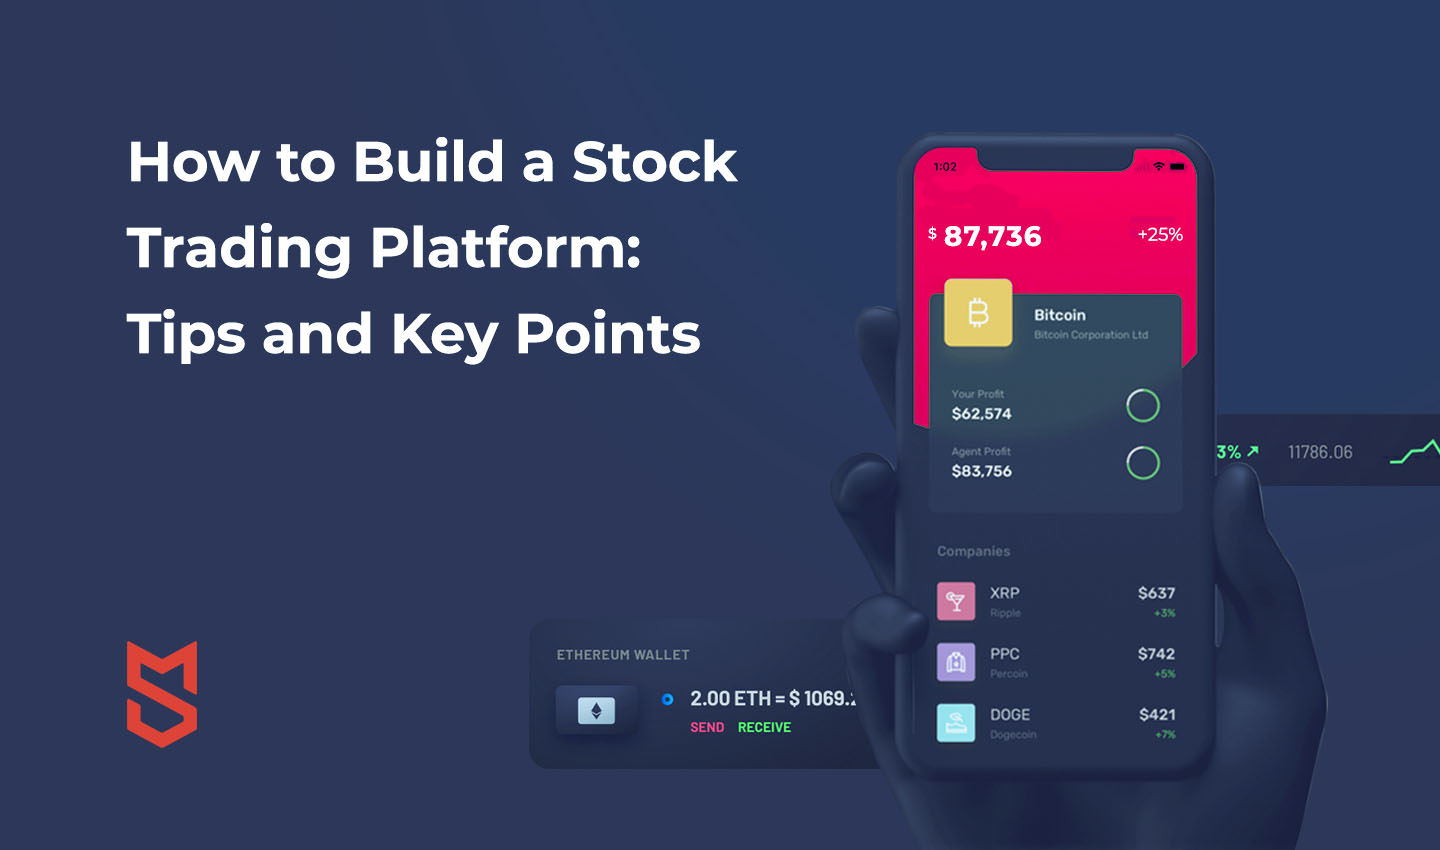 How to Build a Stock Trading Platform: Tips and Key Points